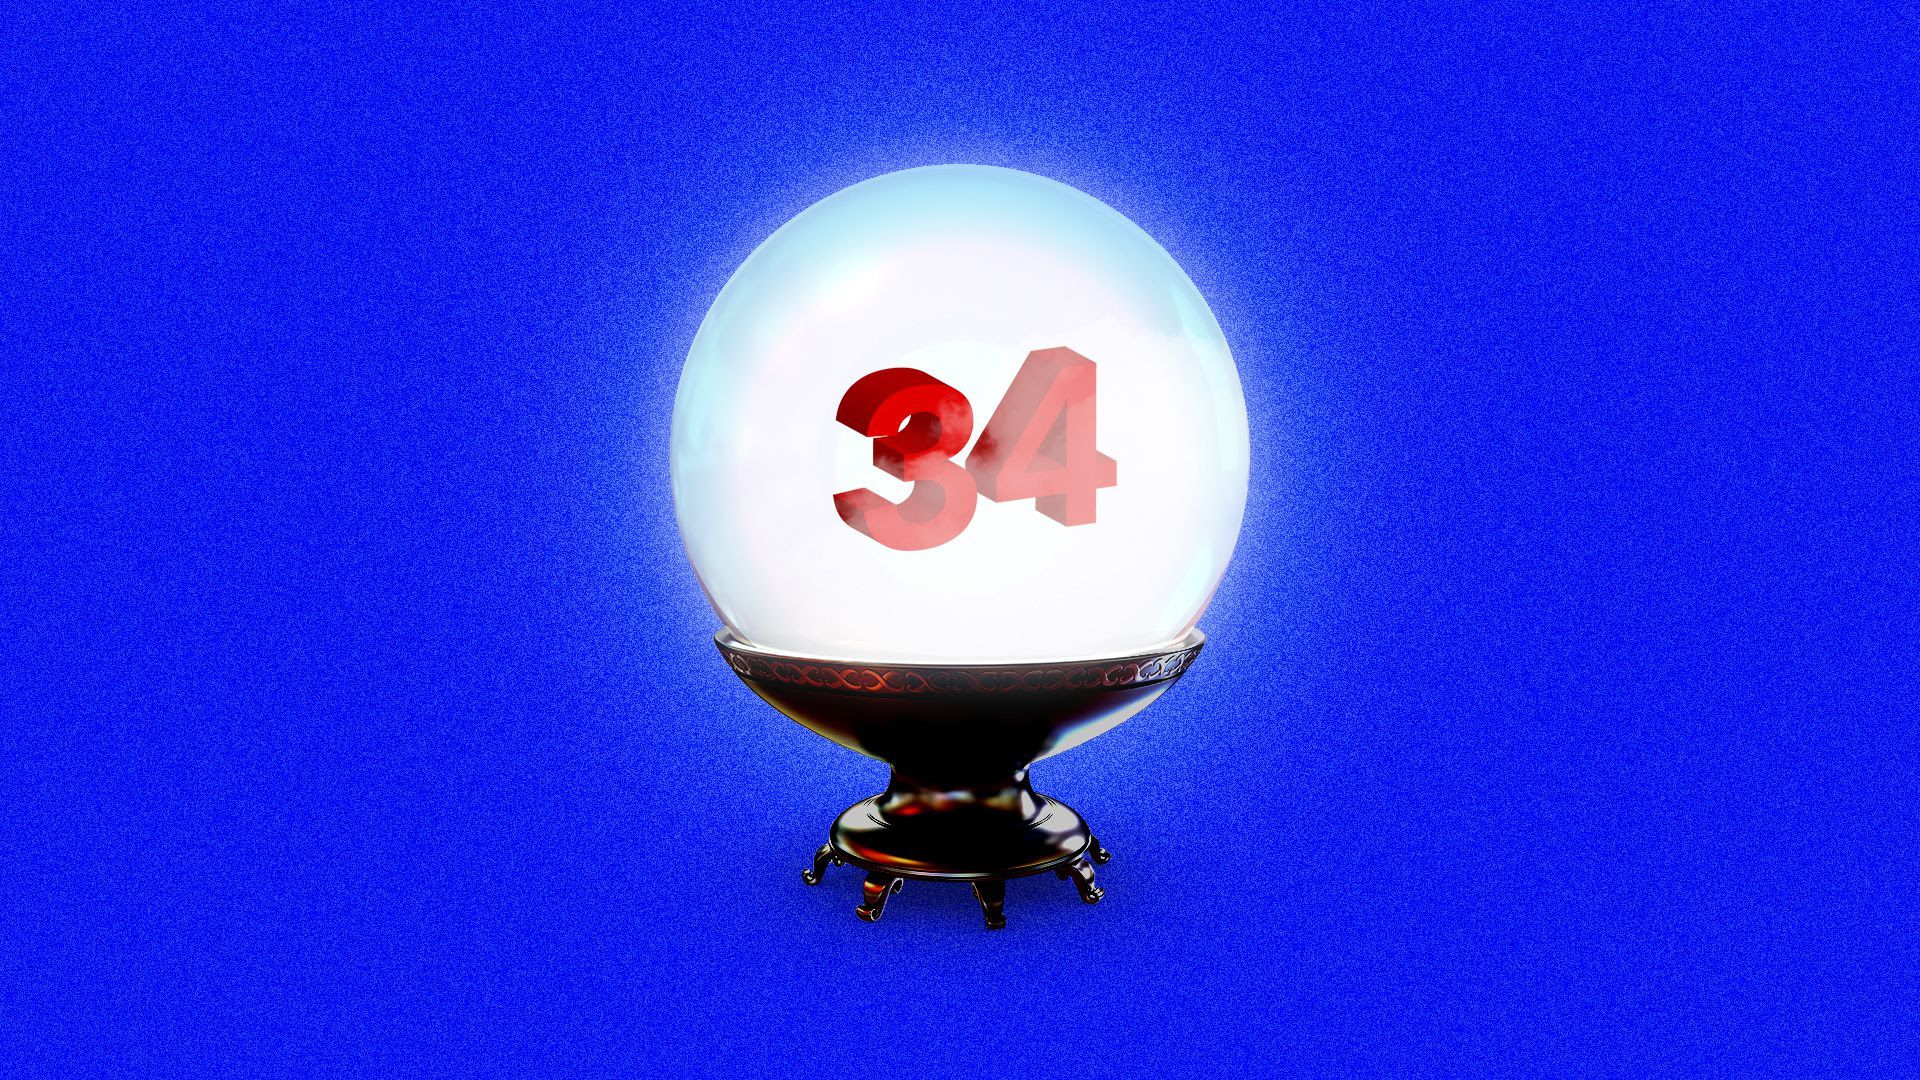 A magic ball showing the number 34.